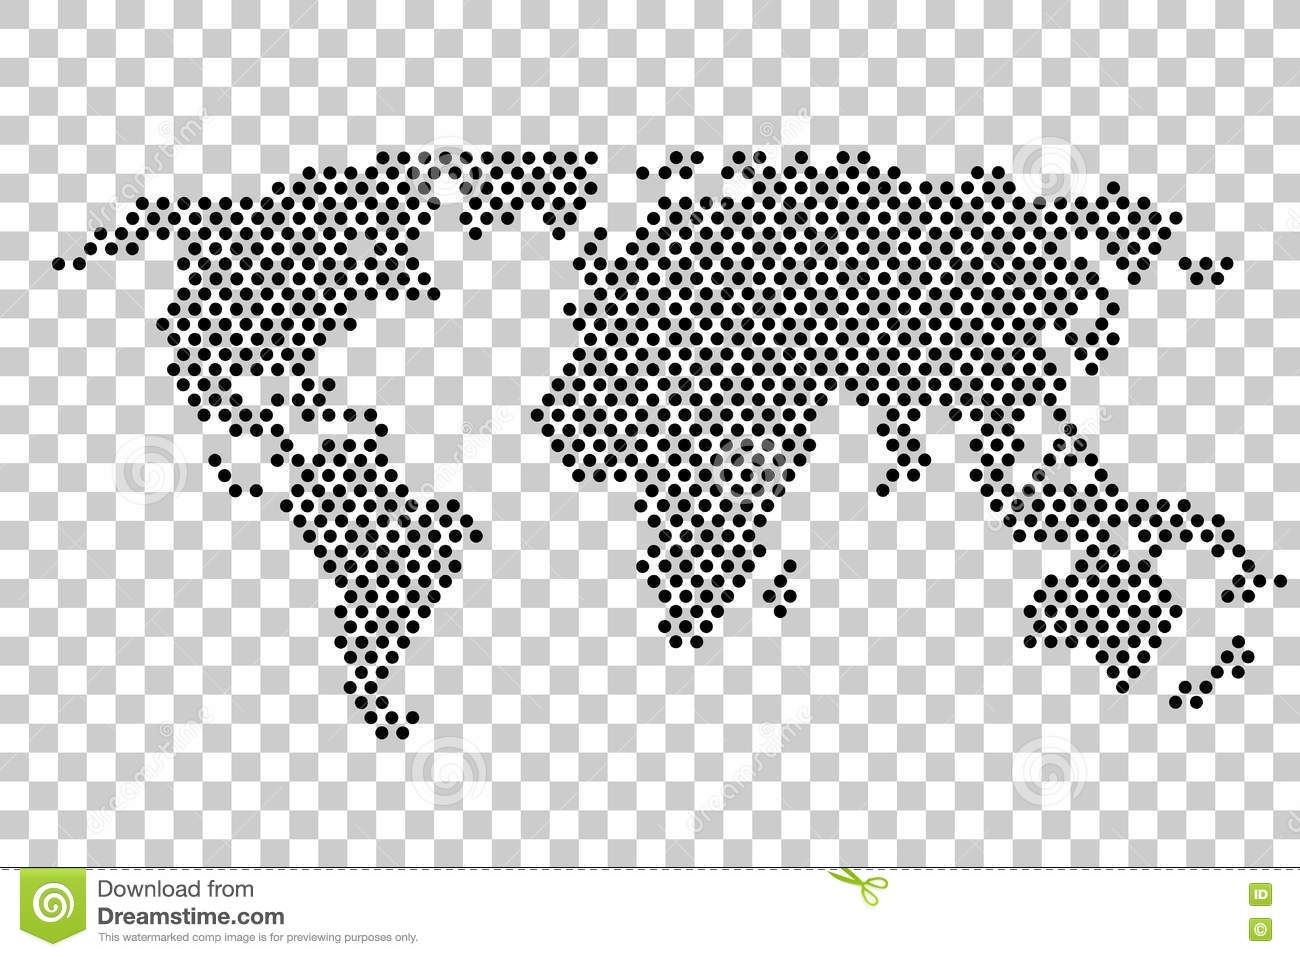 Black dot world map at transparent effect background illustration black dot world map at transparent effect background gumiabroncs Images